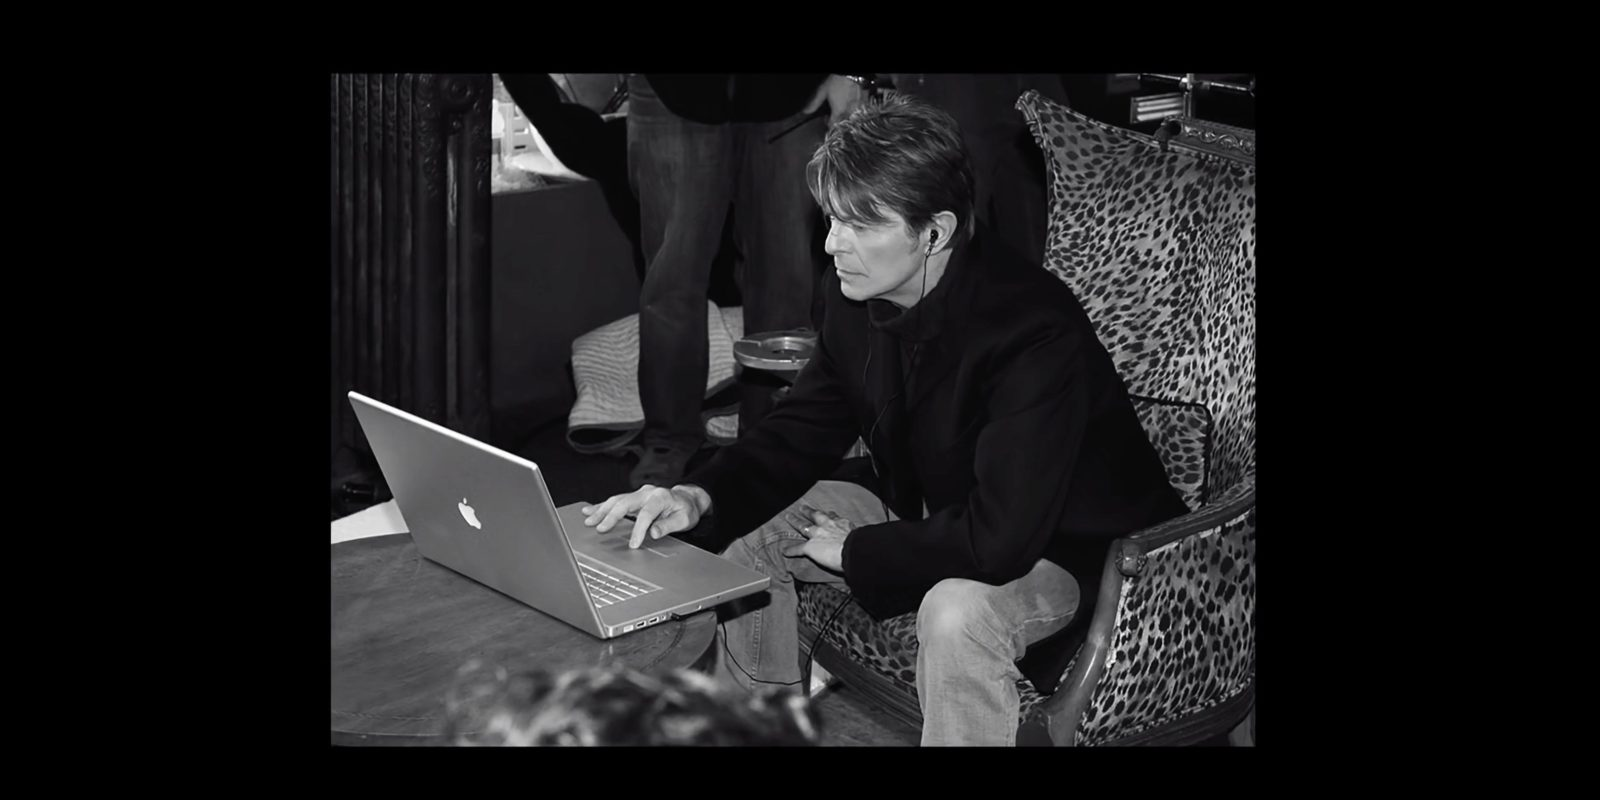 photo of Apple shares 'Behind the Music. Behind the Mac' video highlighting the British music scene image